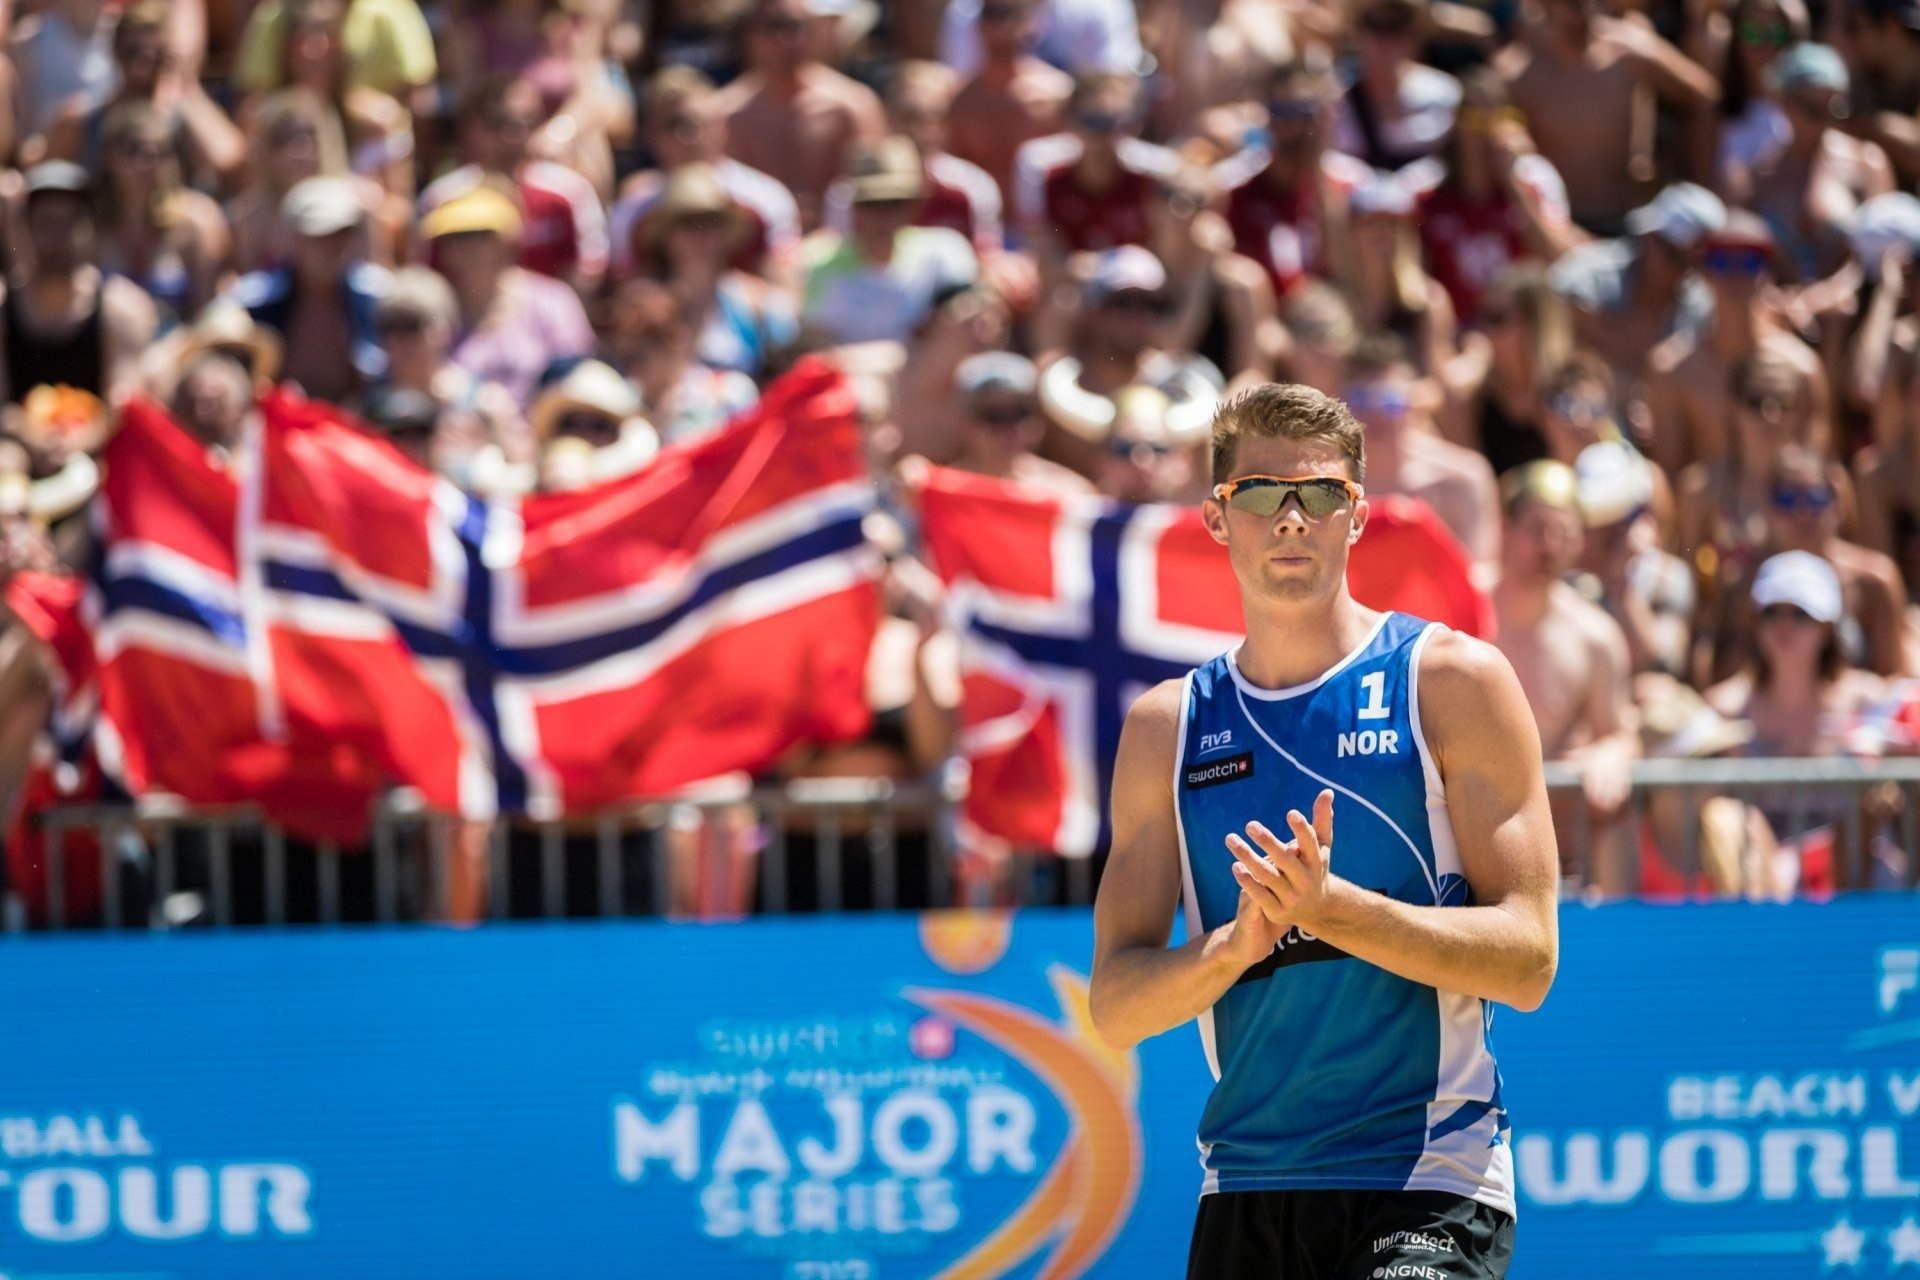 Anders Mol, the youngest BeachVolley viking, was named 2017 Rookie of the Year